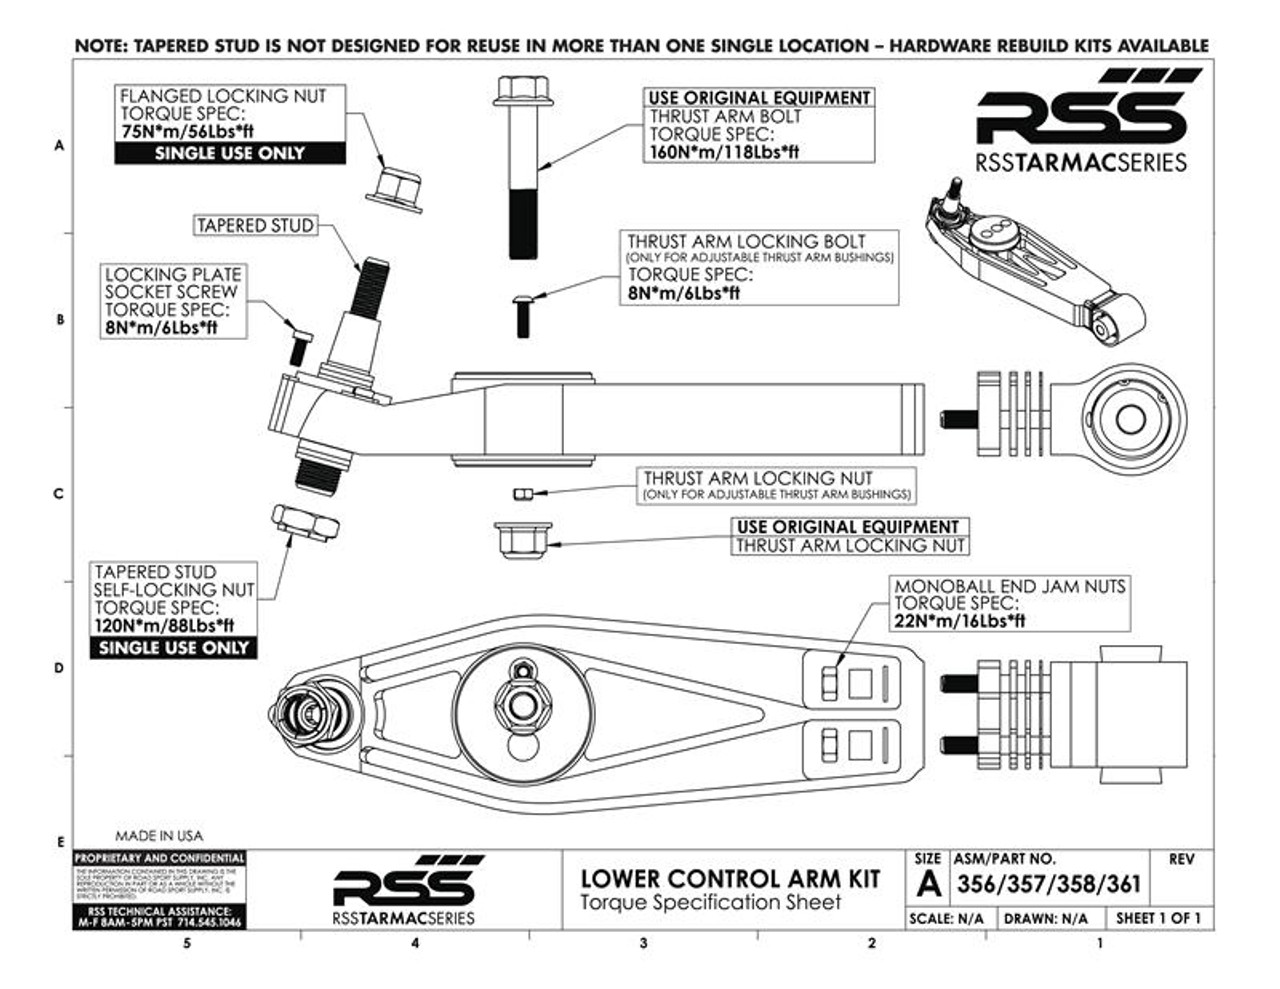 RSS Tarmac Series Lower Control Arm - Outer Ball Joint Pin Rebuild Kit: Includes - 1 x Tapered Stud, 1 x Upper Lock Nut, 1 x Lower Lock Nut and 4 x Roll Center Spacers/Washers. 1 Kit Per RSS Lower Control Arm (Fits: Part #s: 356, 357, 361, 372, 373, 374 and 366). USER NOTE: A new 380 Kit should be installed once ball joint pin has been removed from hub. See Lower Control Arm Notes.